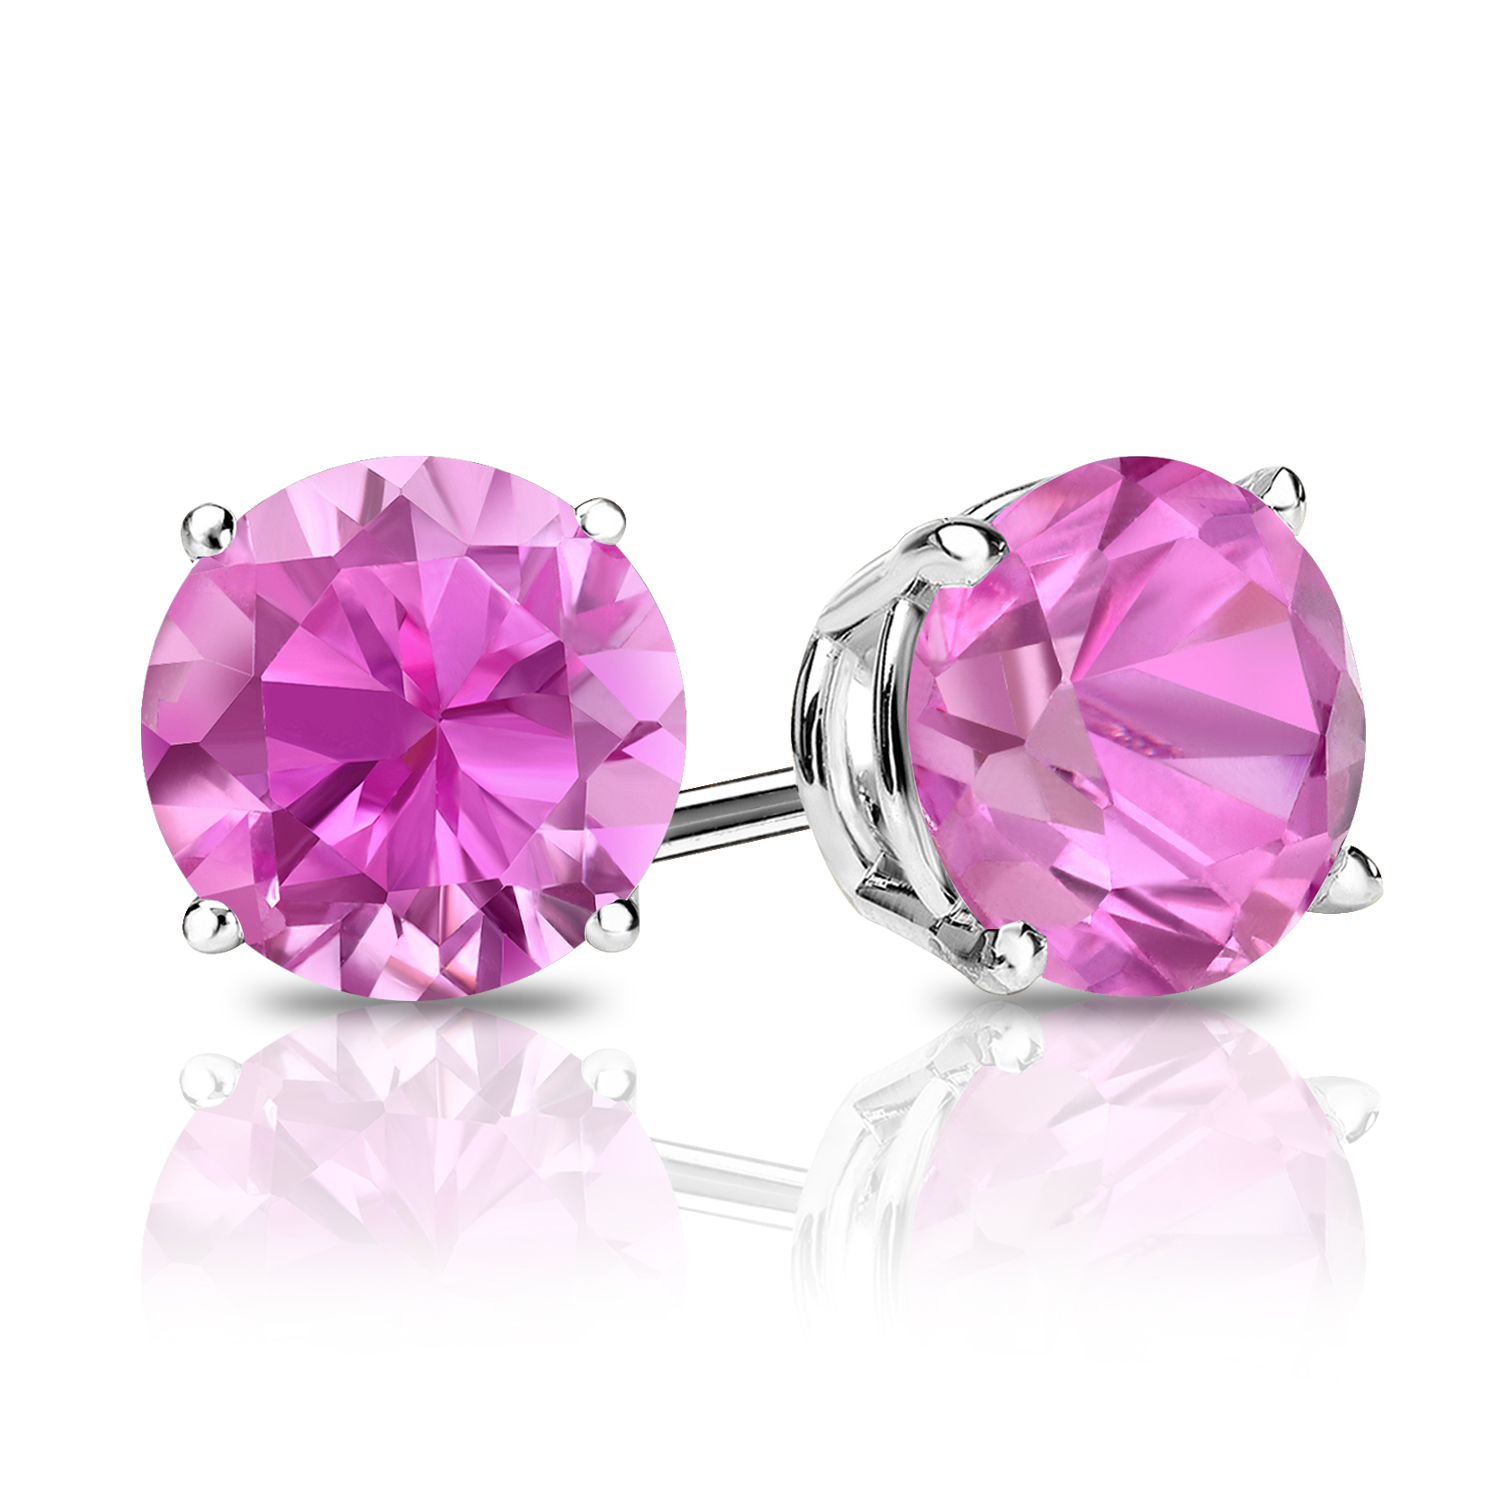 Certified 0.25 cttw Round Pink Sapphire Gemstone Stud Earrings in 14k White Gold 4-Prong Basket (Pink, AAA)